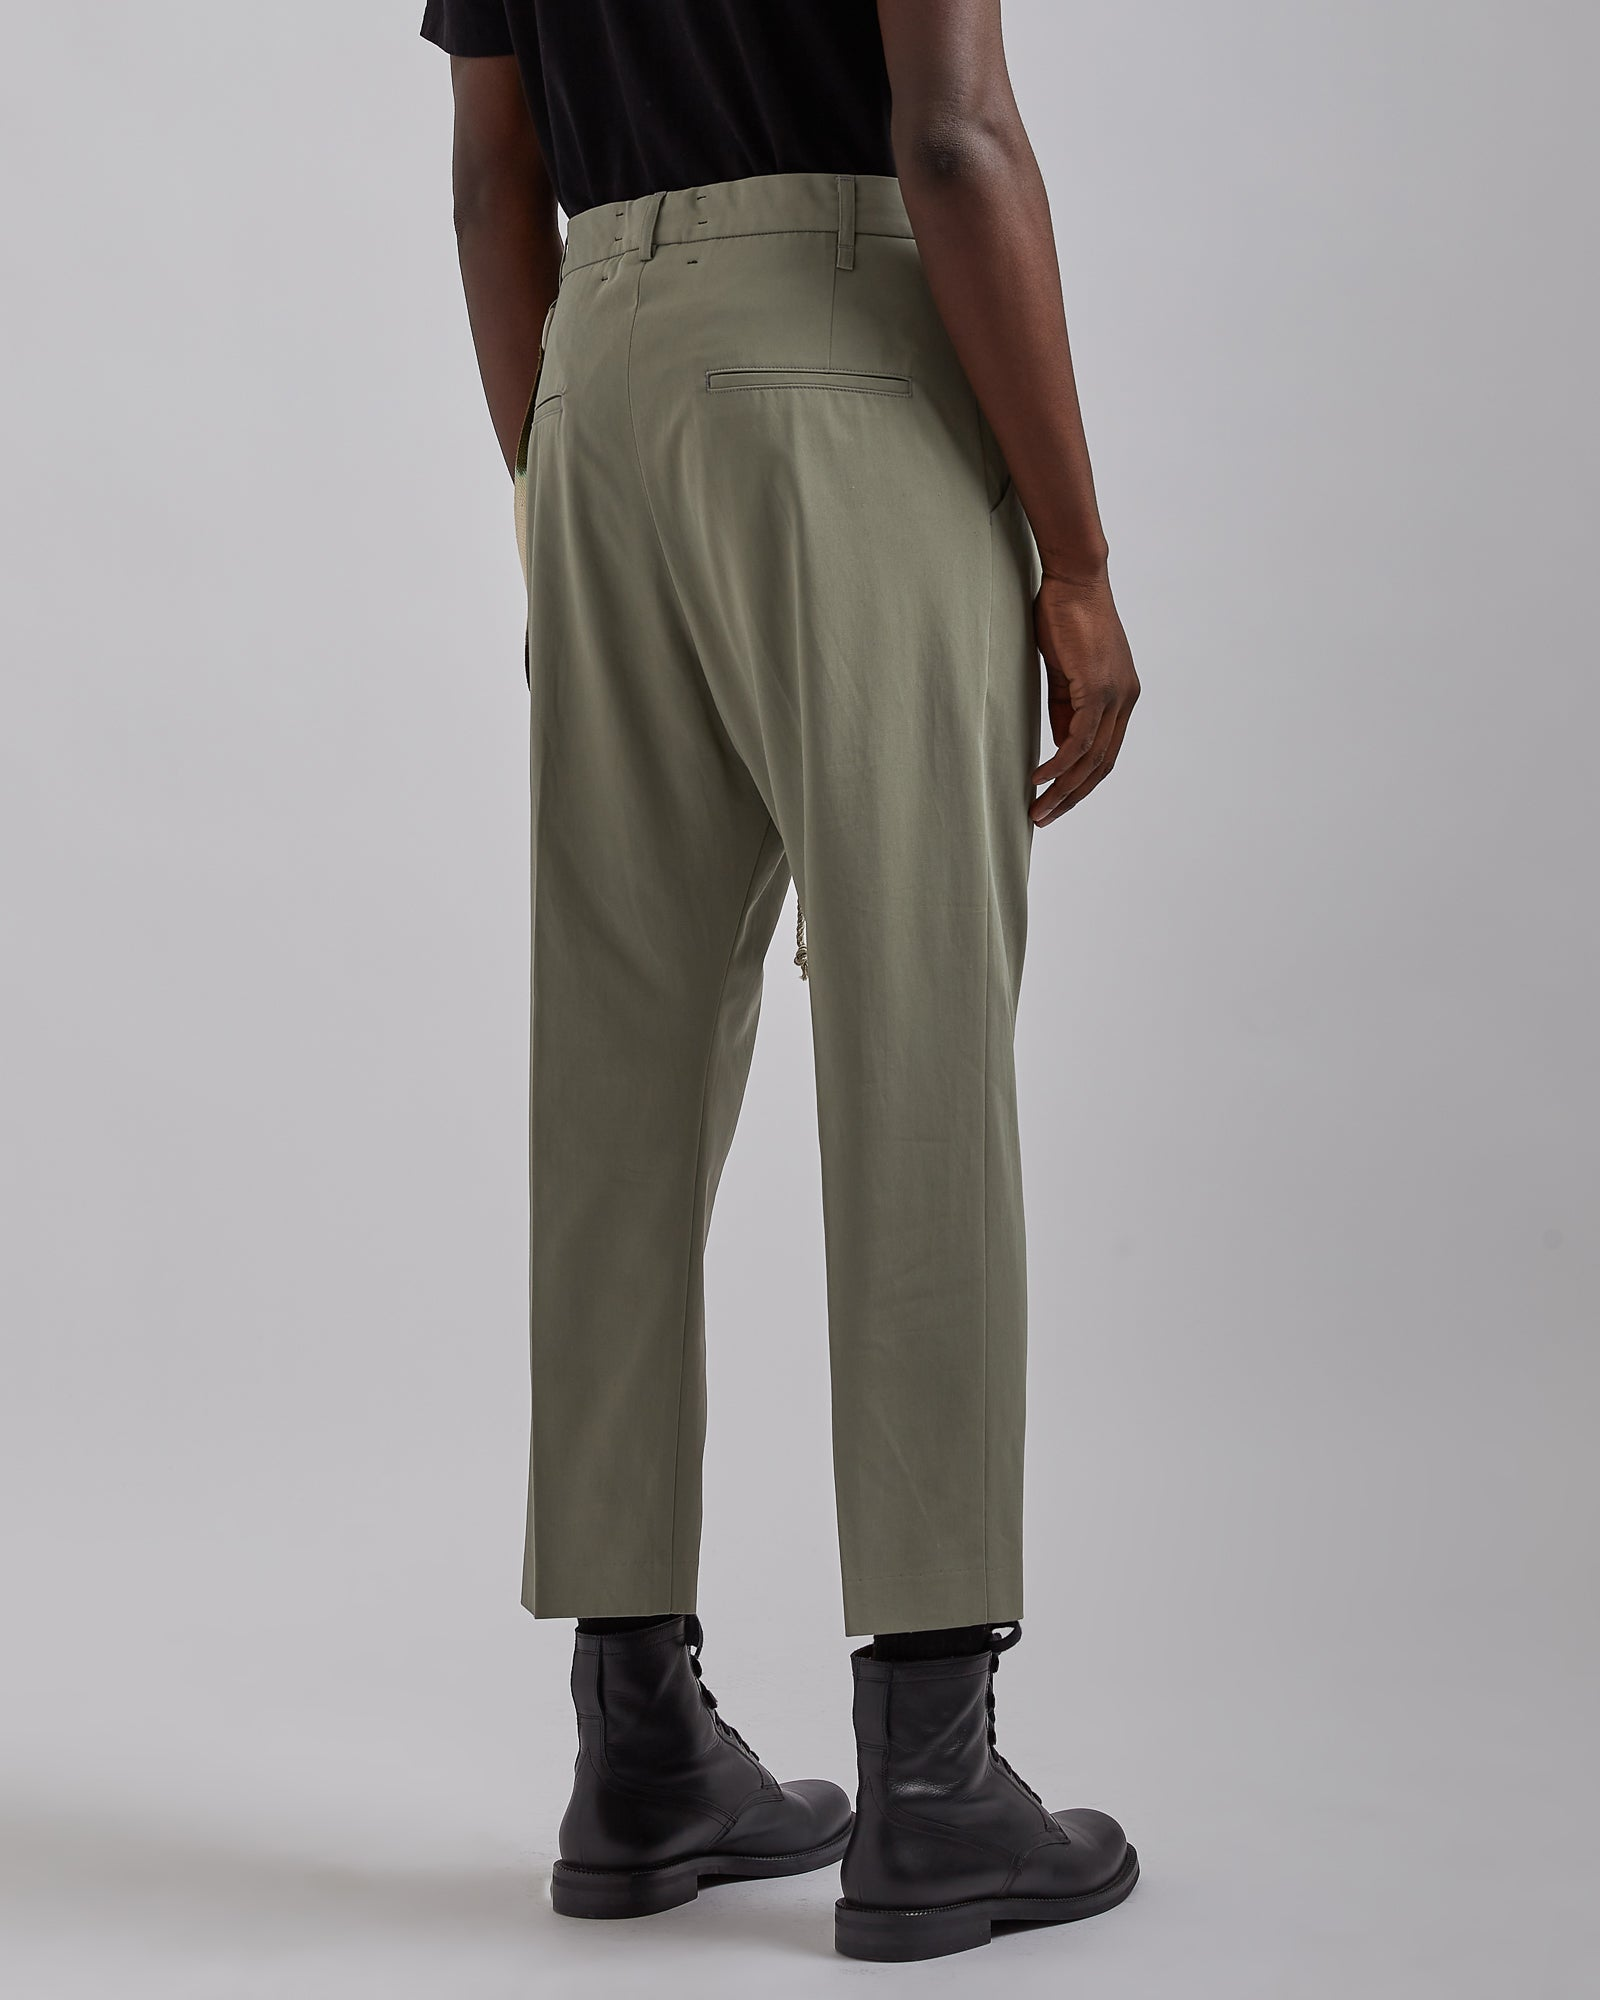 Pleated Tapered Pant in Olive